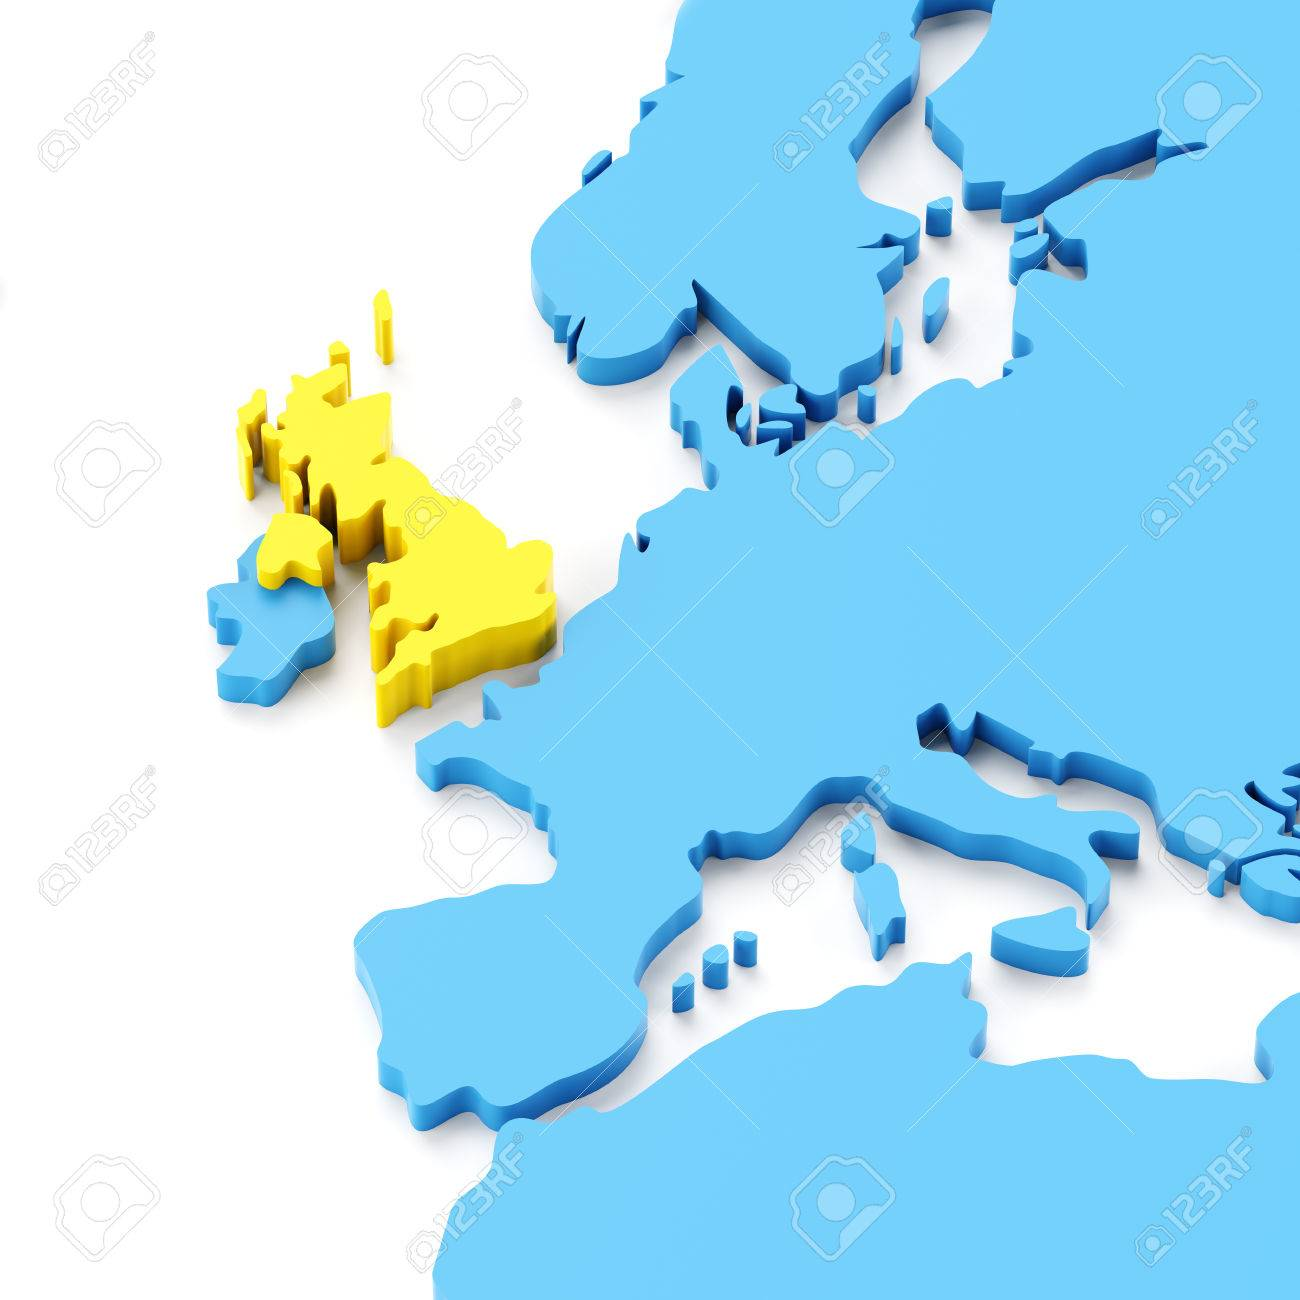 Map Of Europe With UK Highlighted In Yellow 3d Render Photo – Europe and Uk Map